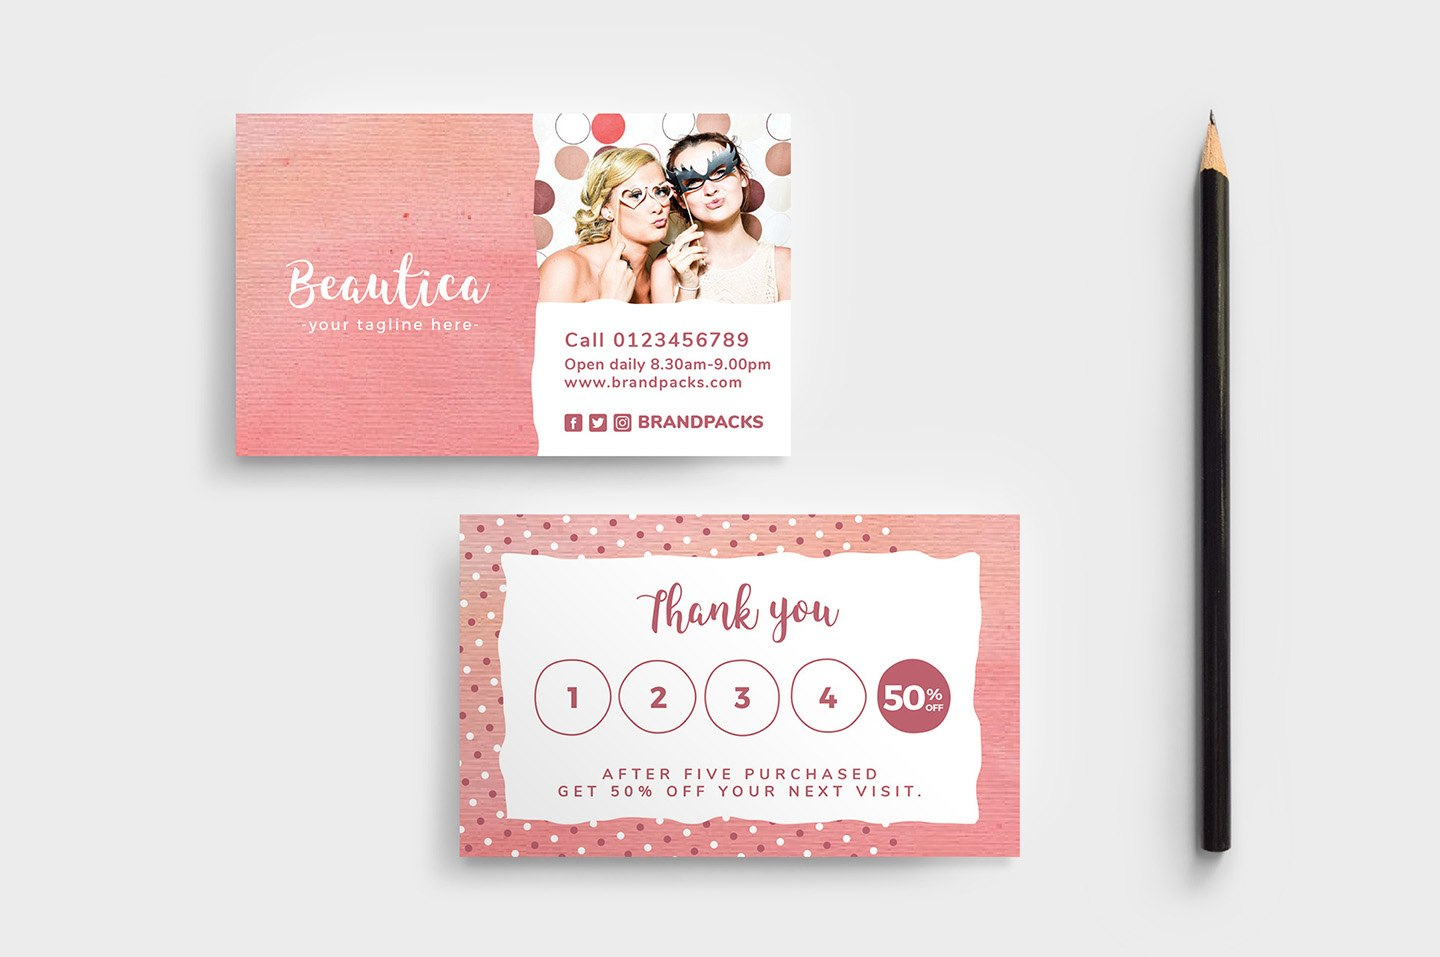 Free Loyalty Card Templates  Psd Ai  Vector  Brandpacks Intended For Customer Loyalty Card Template Free